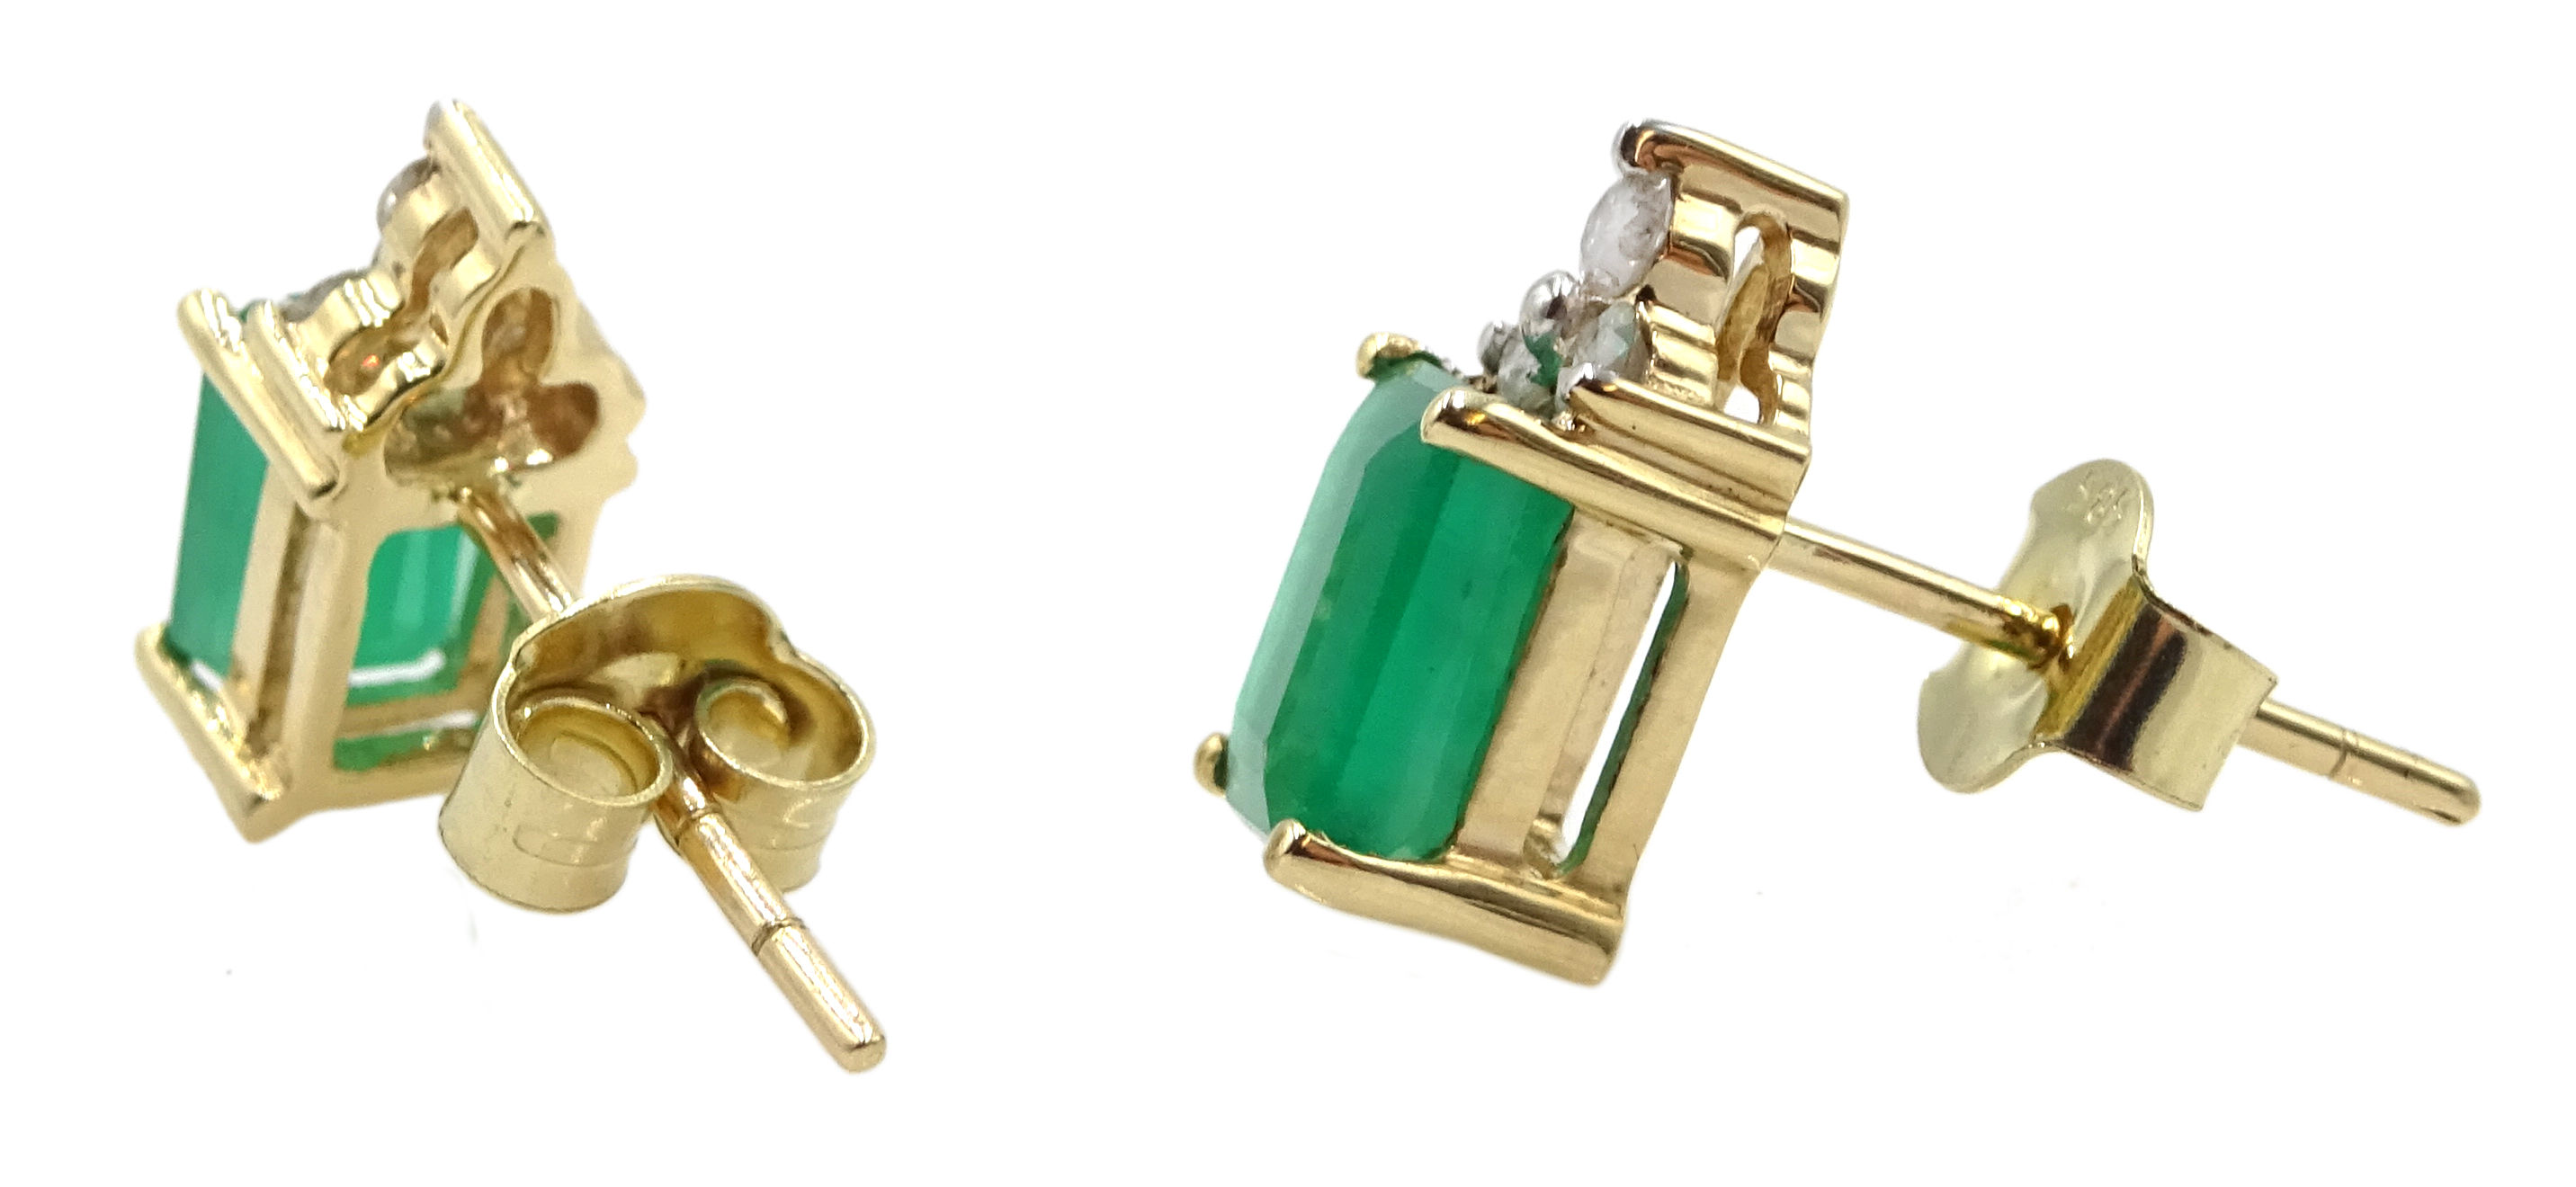 Pair of 14ct gold emerald and diamond stud earrings, stamped 585, emerald total weight approx 1.95 - Image 2 of 2